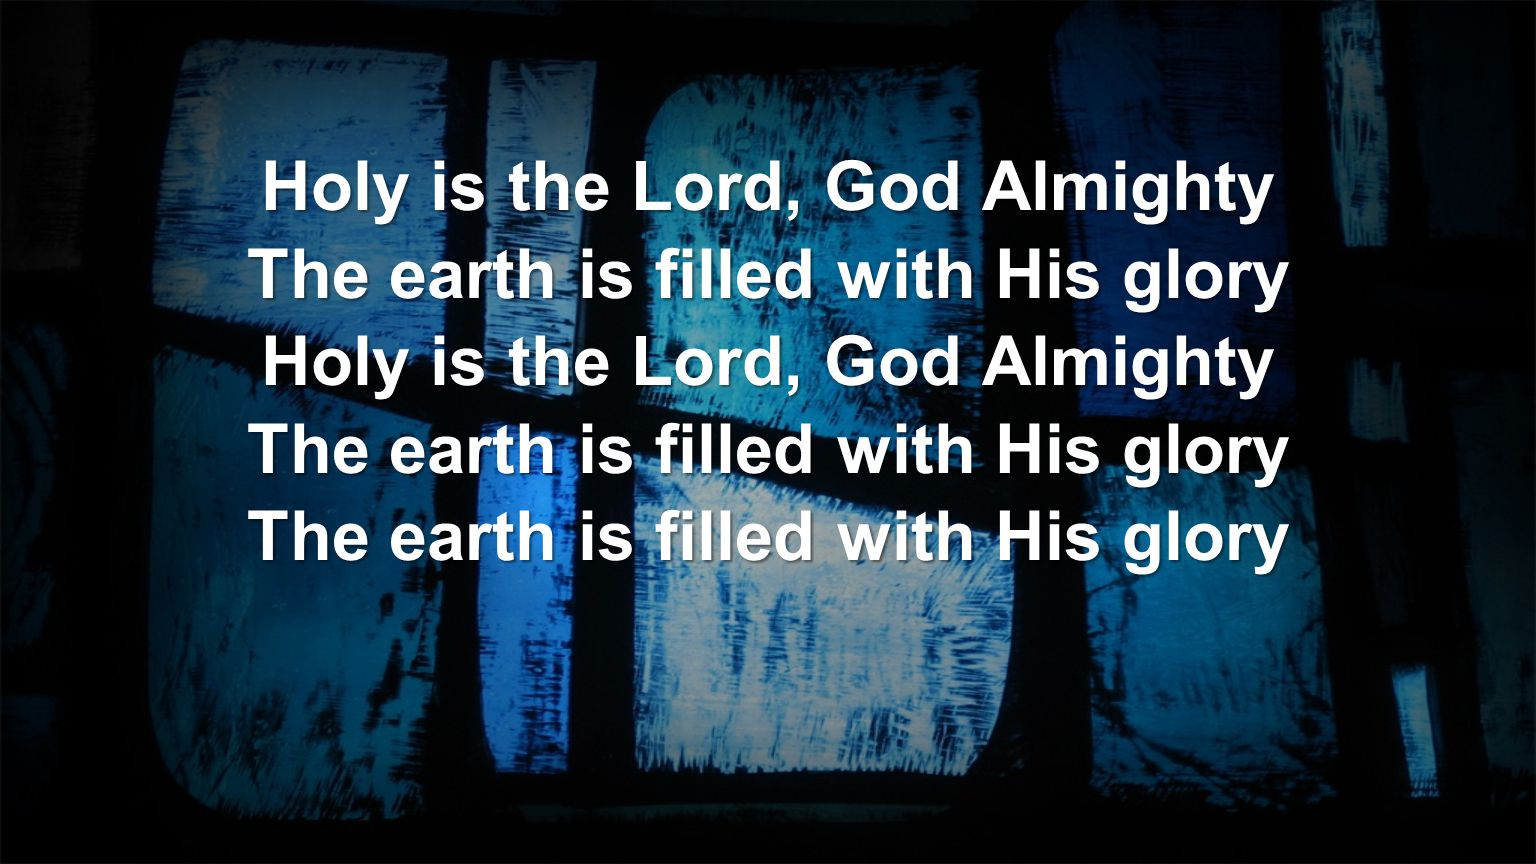 Holy is the Lord, God Almighty The earth is filled with His glory